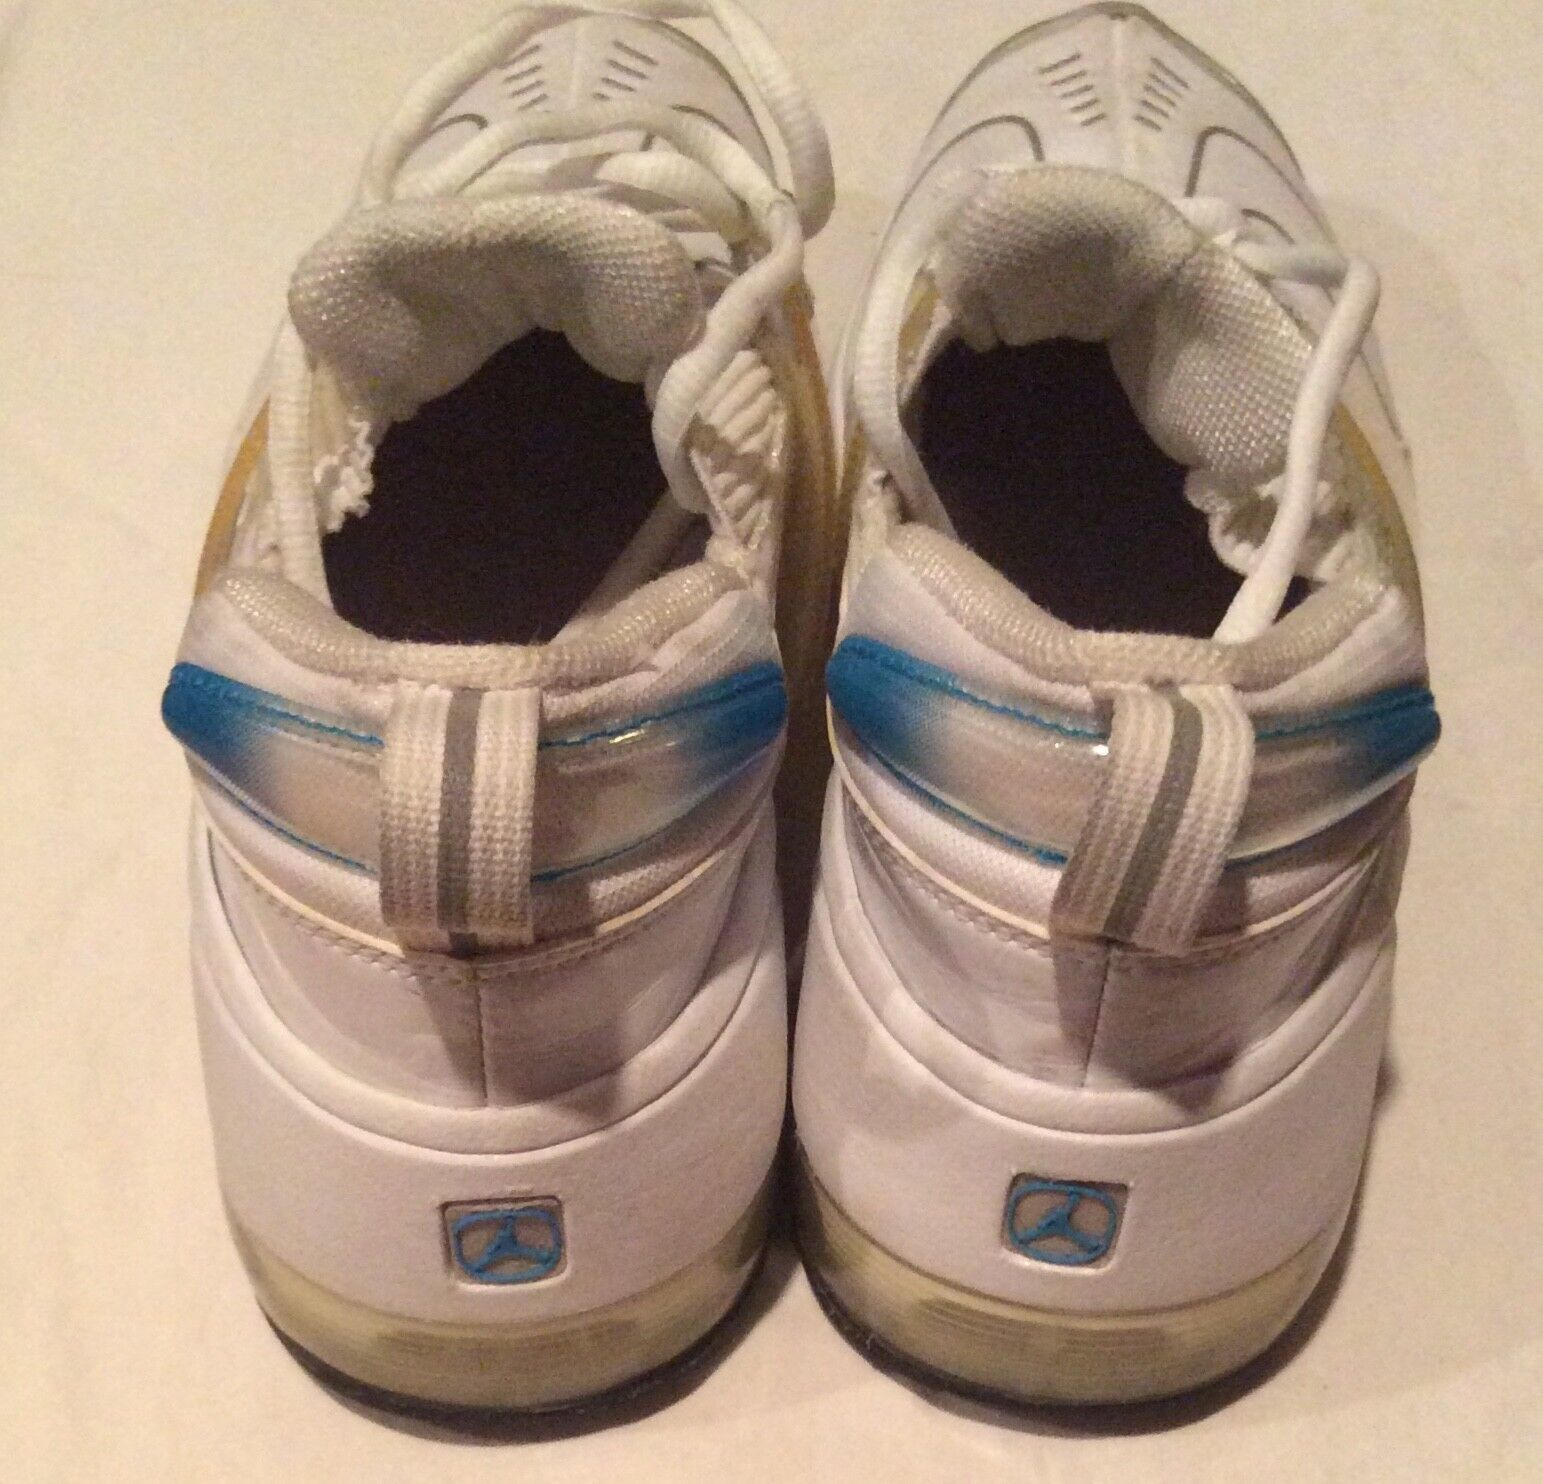 huge discount db6e6 ab003 ... Rare Men s Jordan Jordan Jordan Shoes in EXCELLENT Condition, size 9.5  6bfdc1 ...